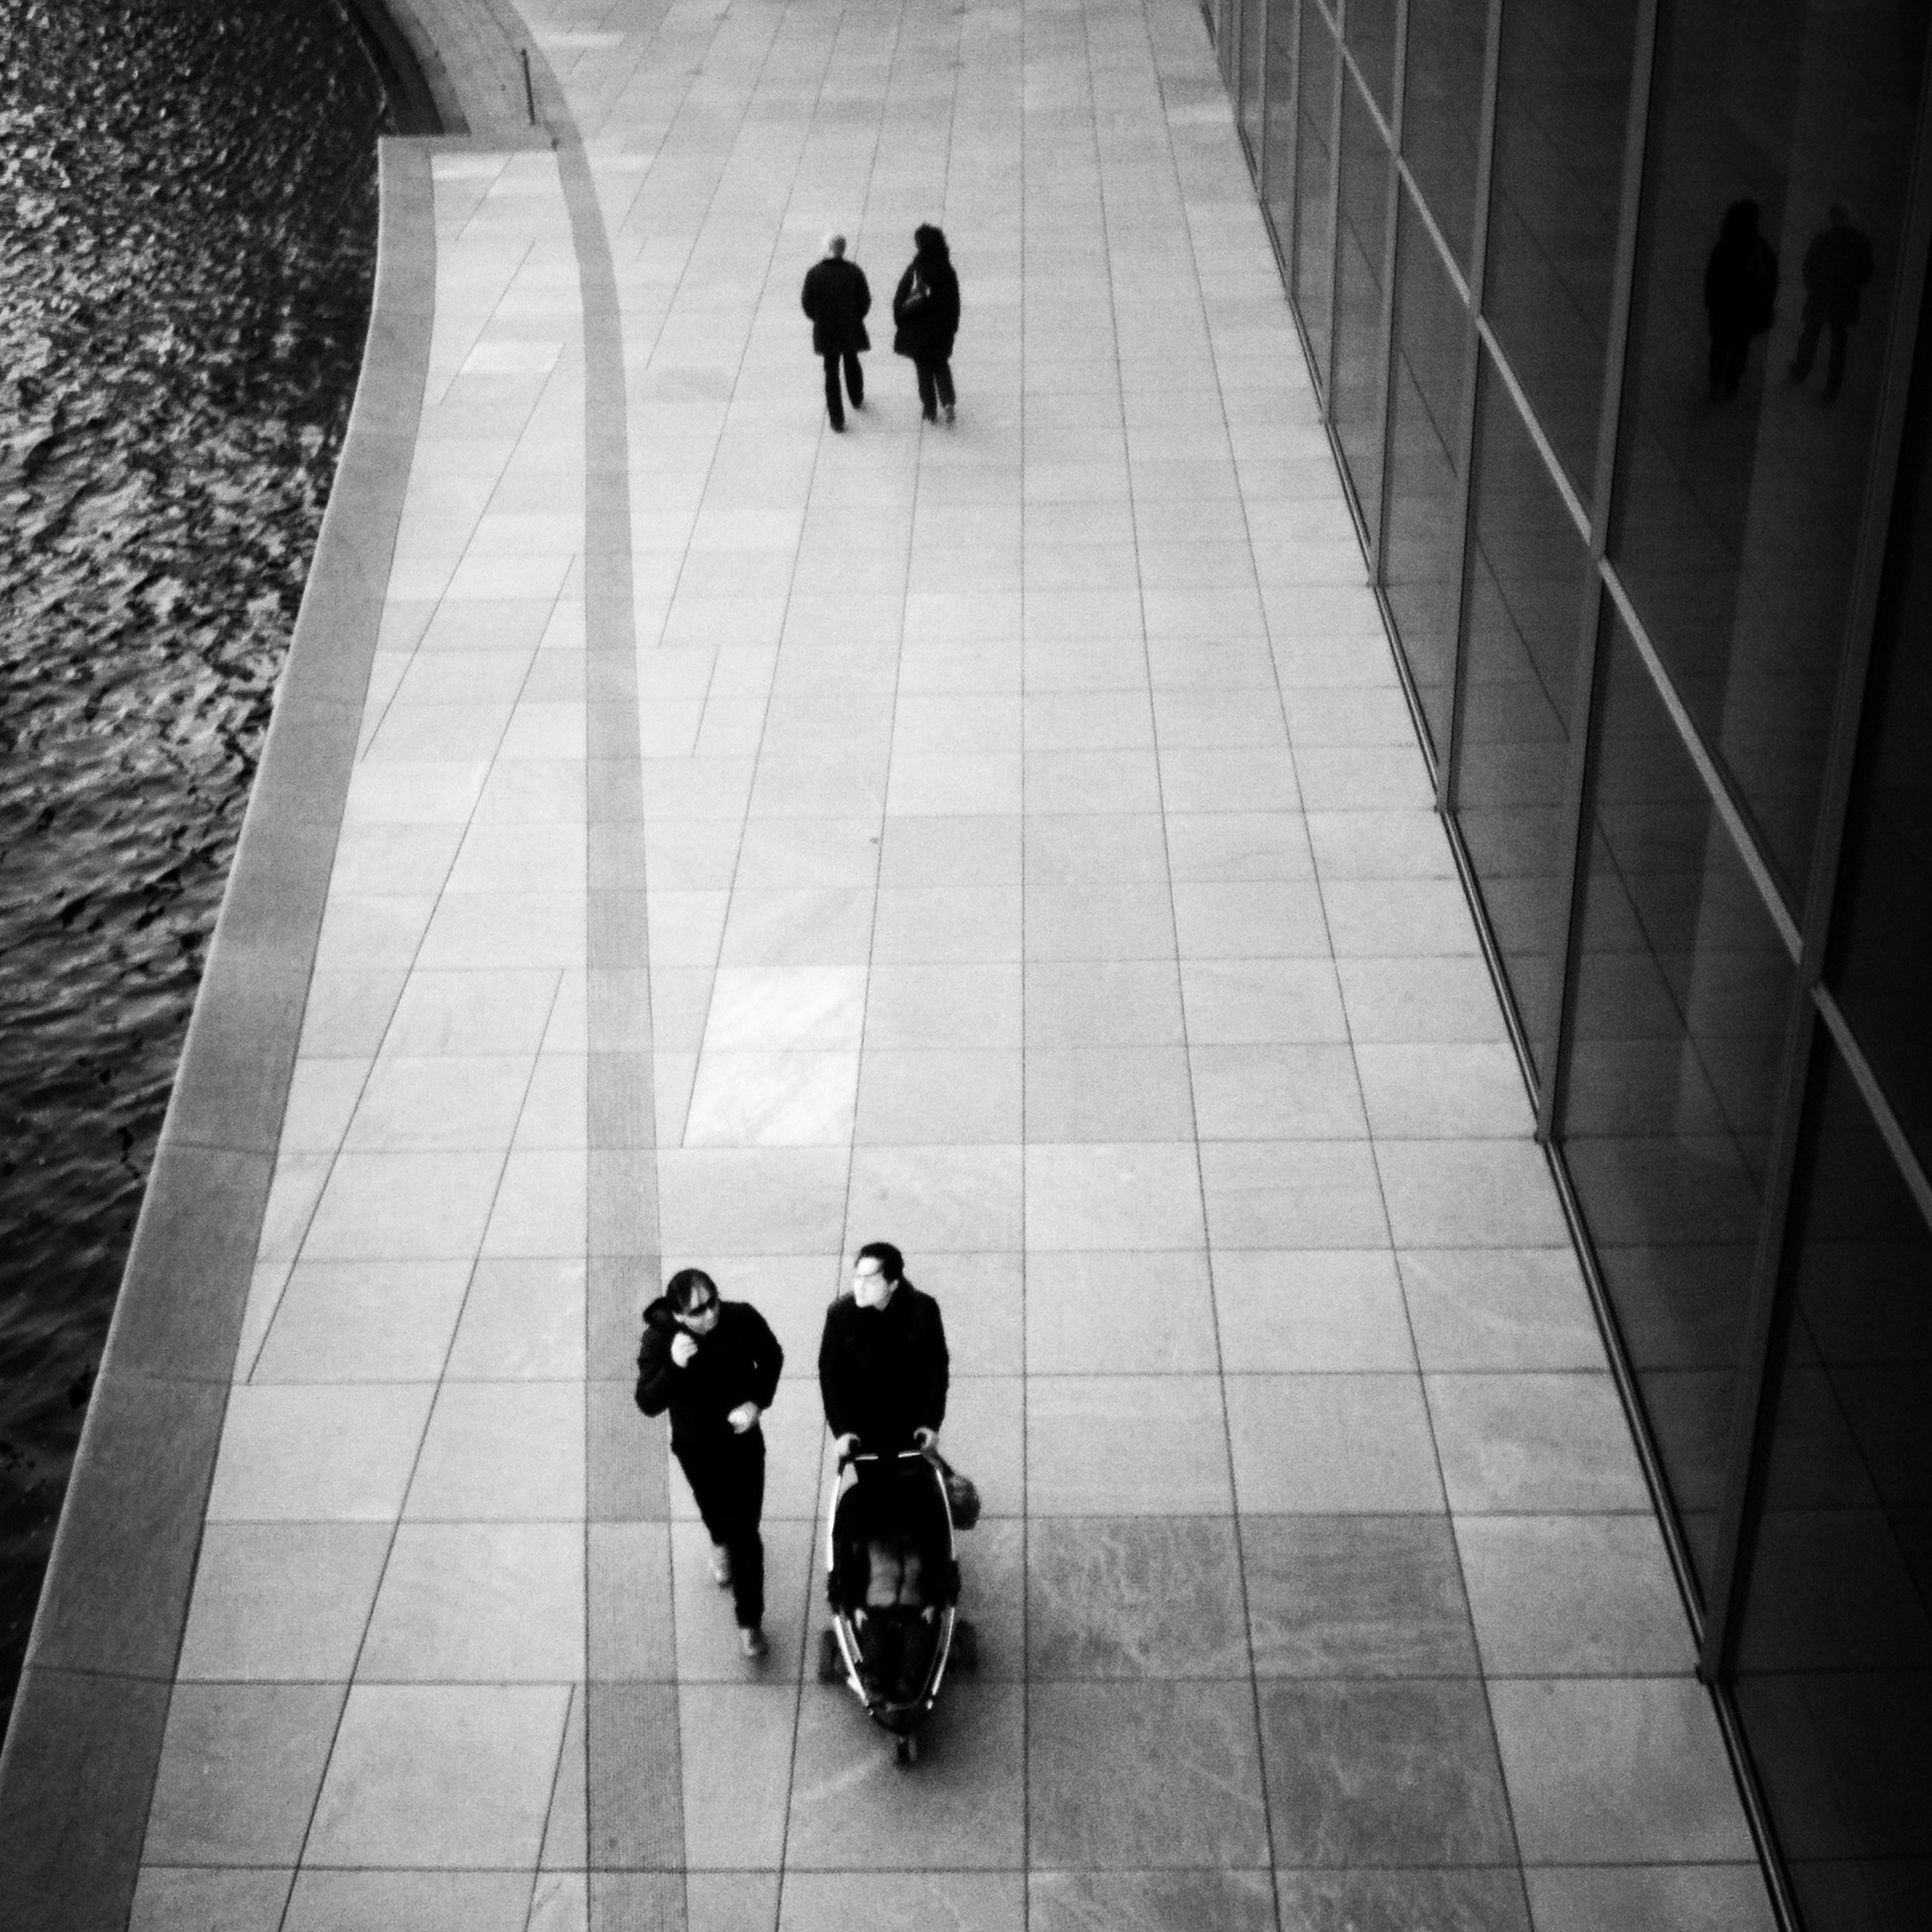 indoors, men, lifestyles, tiled floor, walking, full length, person, leisure activity, rear view, flooring, high angle view, shadow, togetherness, sunlight, the way forward, unrecognizable person